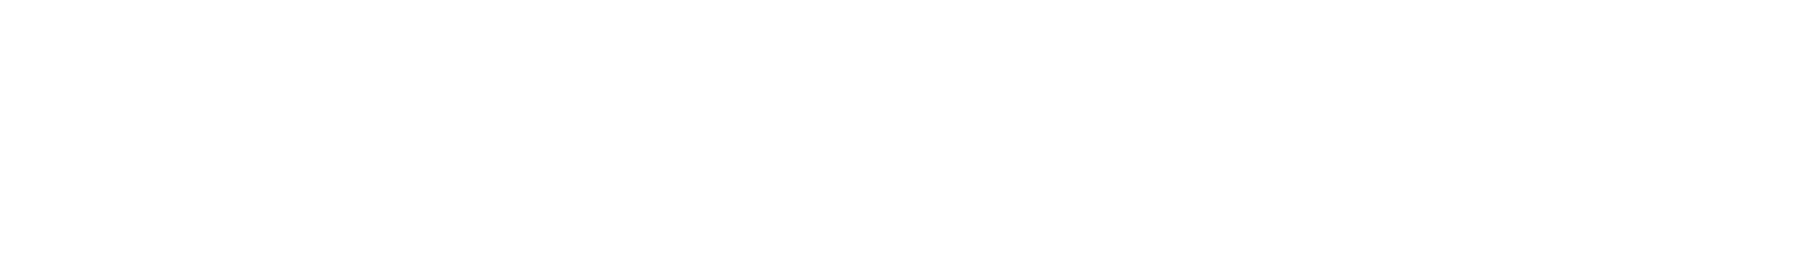 veh1 cutted sounds   129